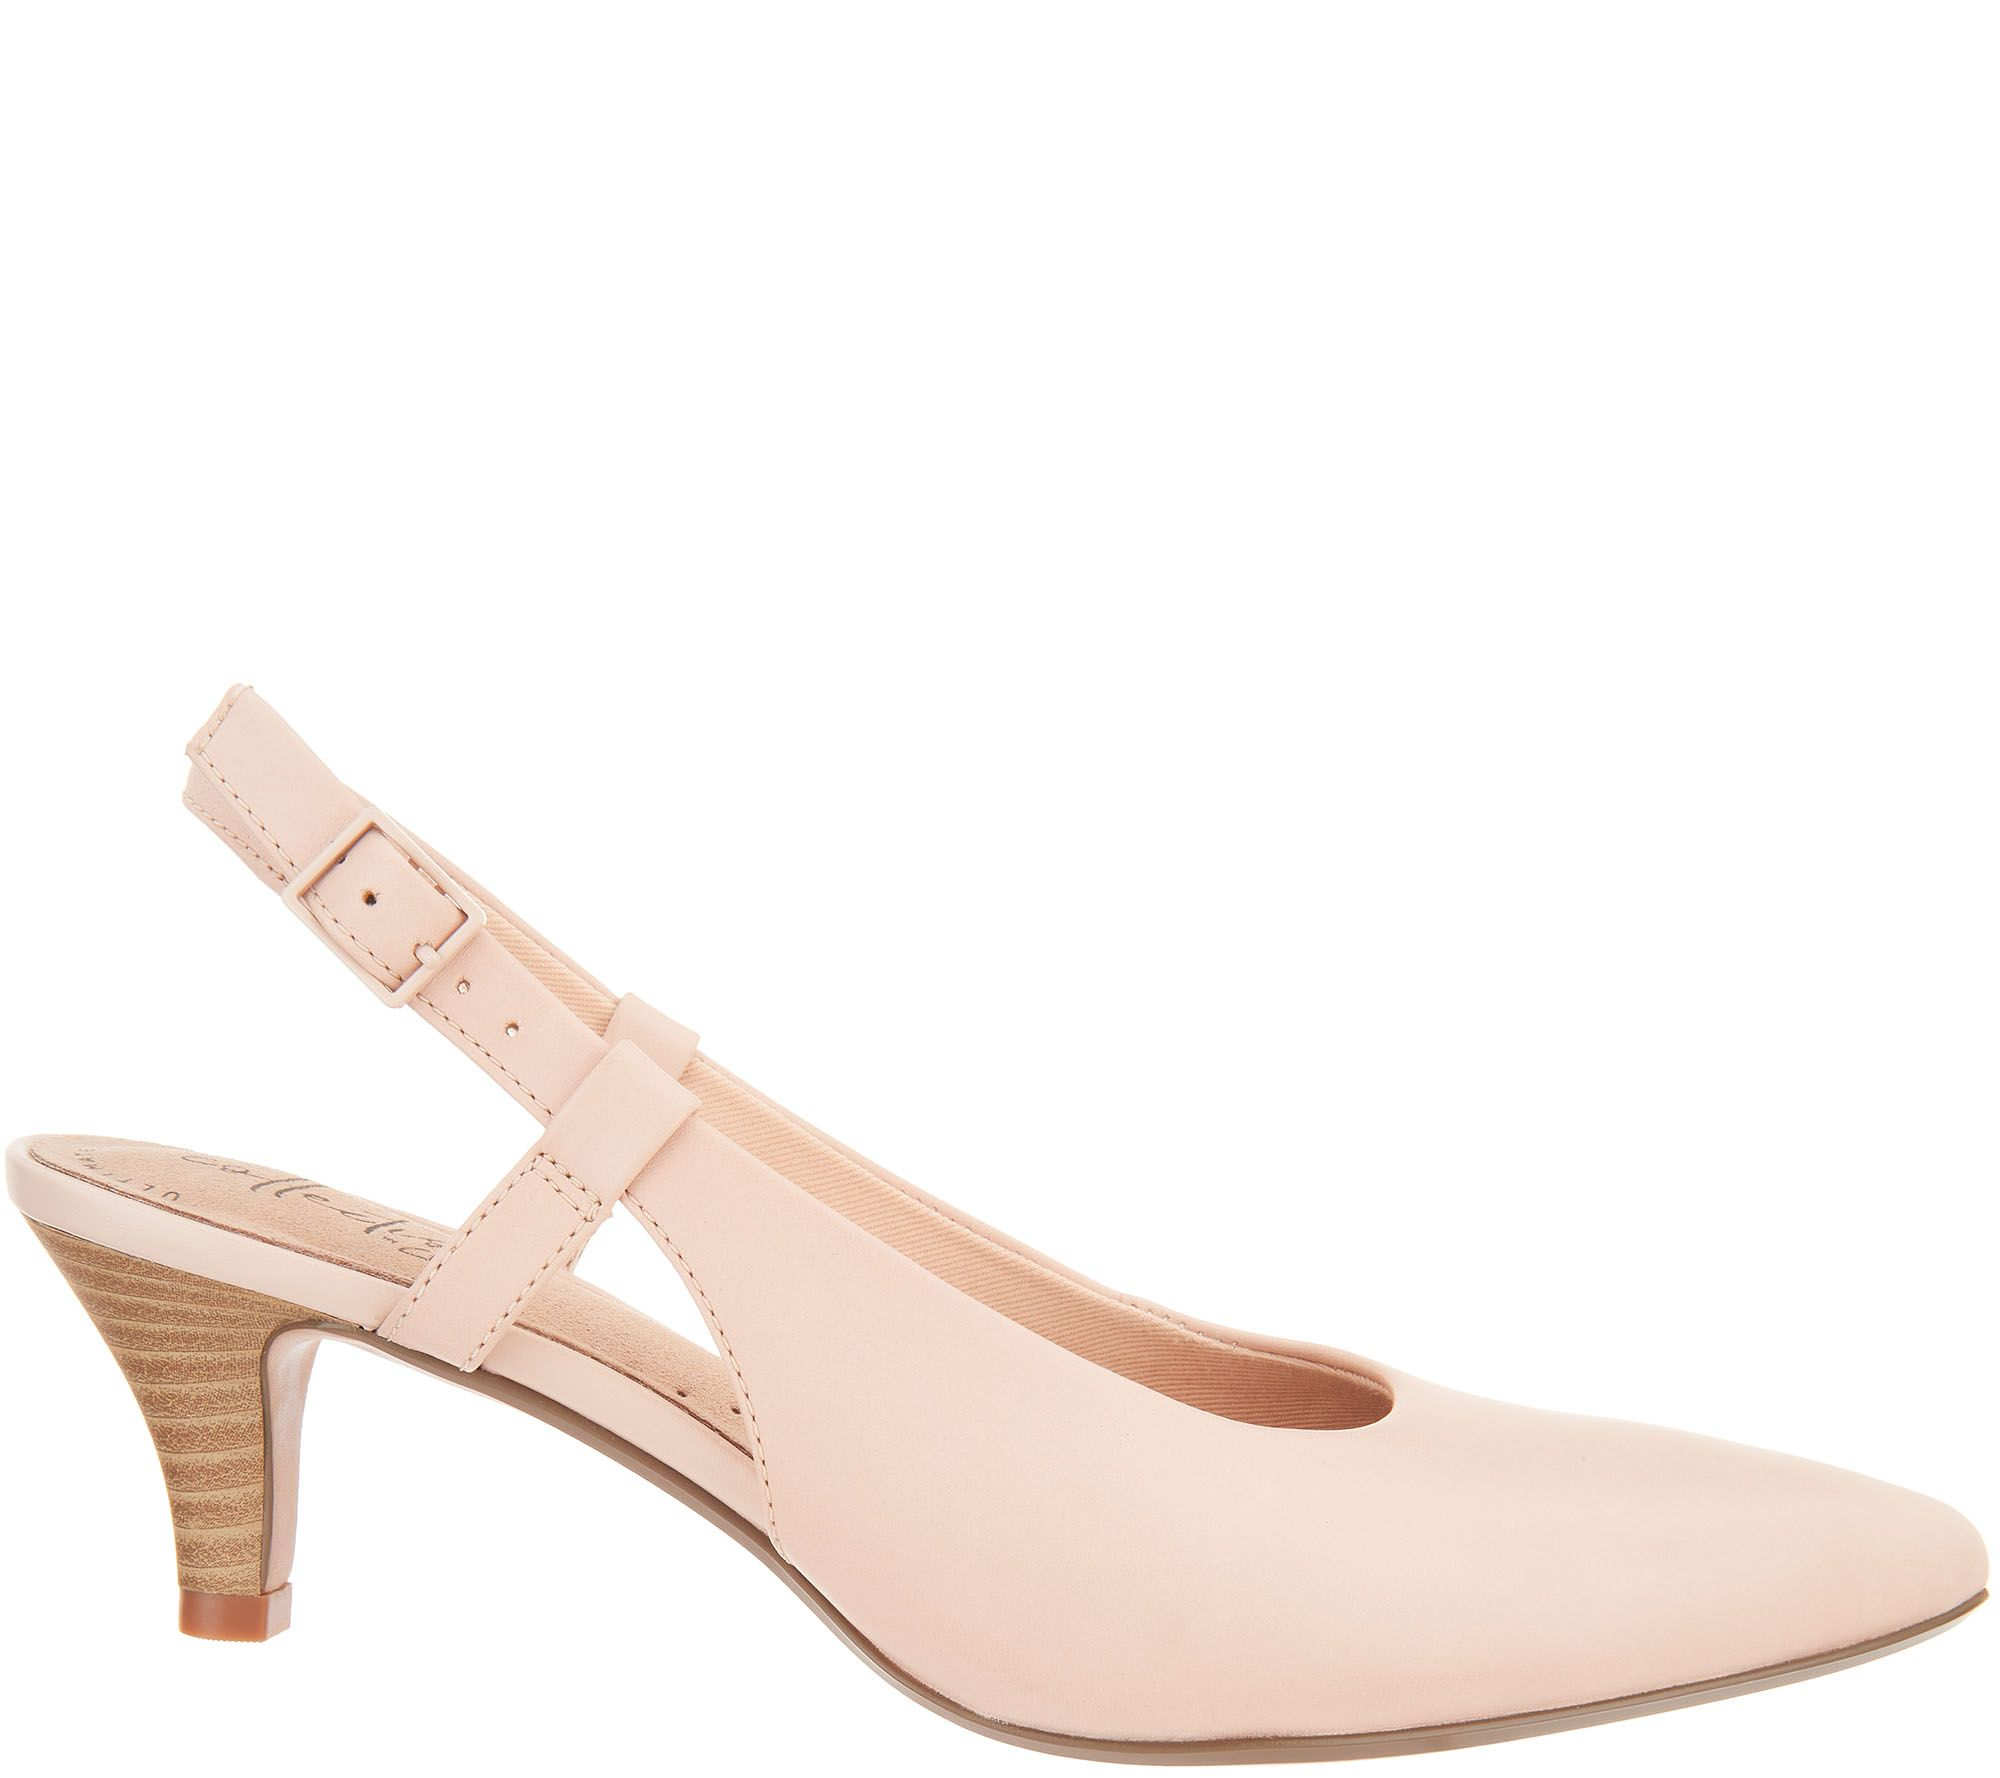 4f486f9c7eb Clarks Collection Leather Slingback Pumps - Linvale Loop — QVC.com